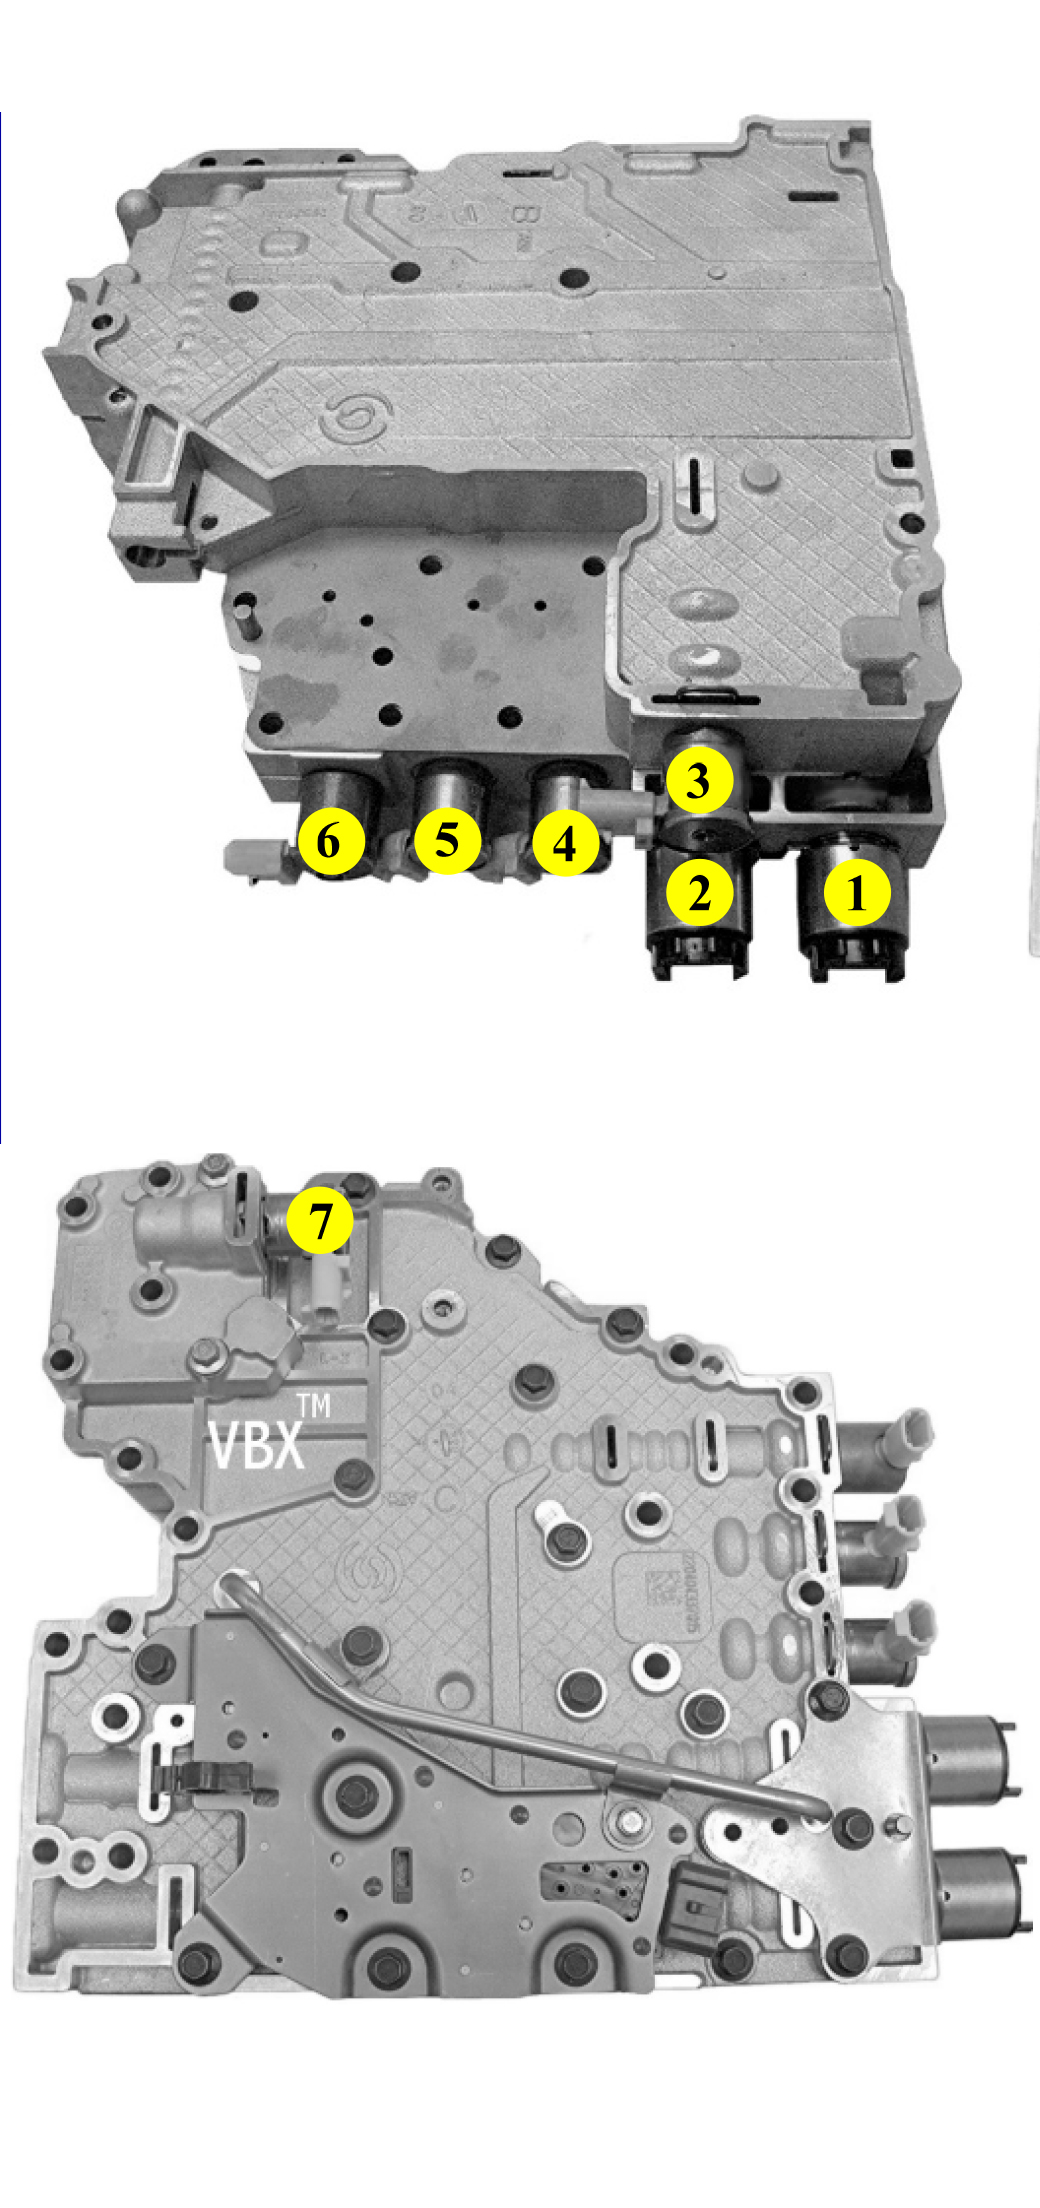 free wiring diagram tool directv swm sonnax 1000/2000/2400 solenoid identification & connector pin outs